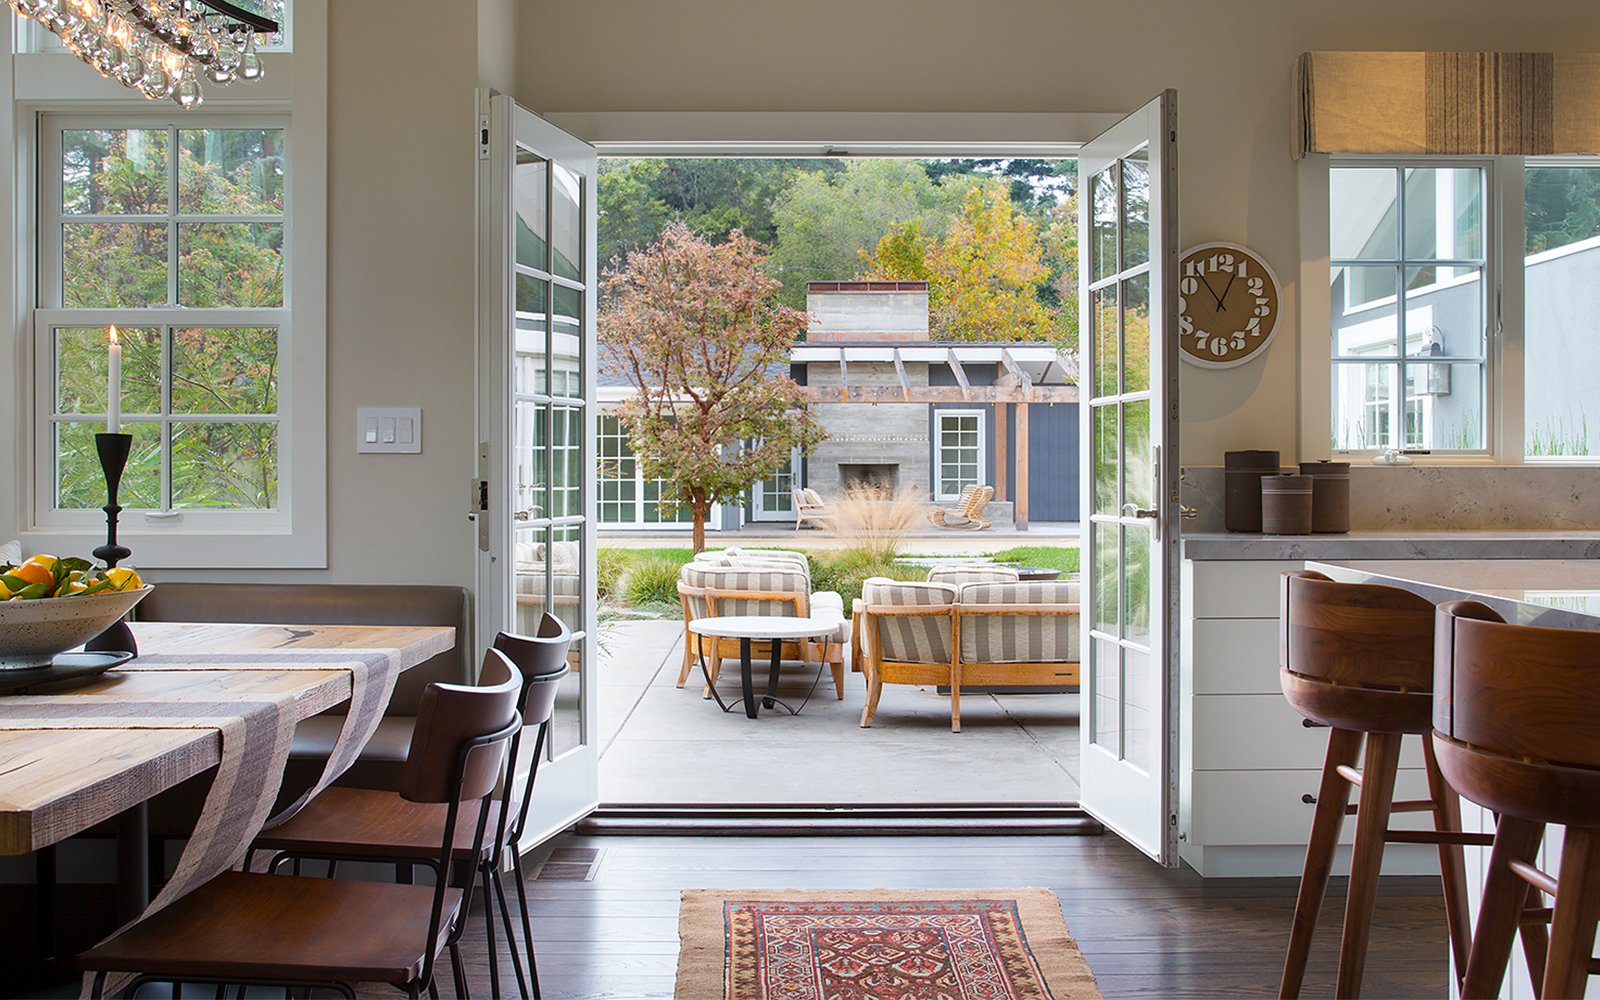 Newly installed French doors open kitchen to outdoor patio.